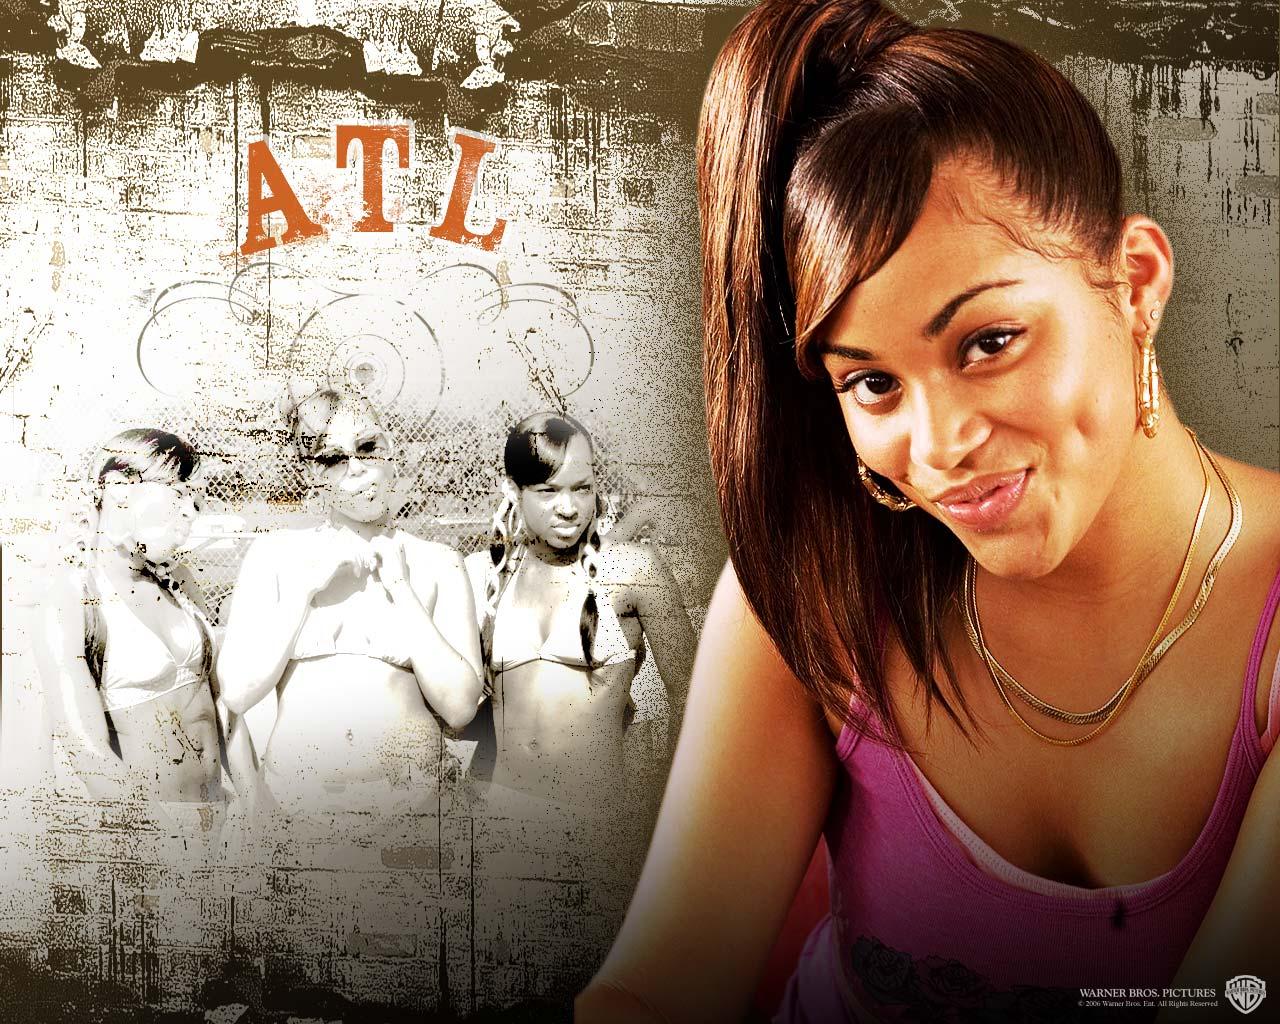 Film Recommendation ATL film cycle 1280x1024